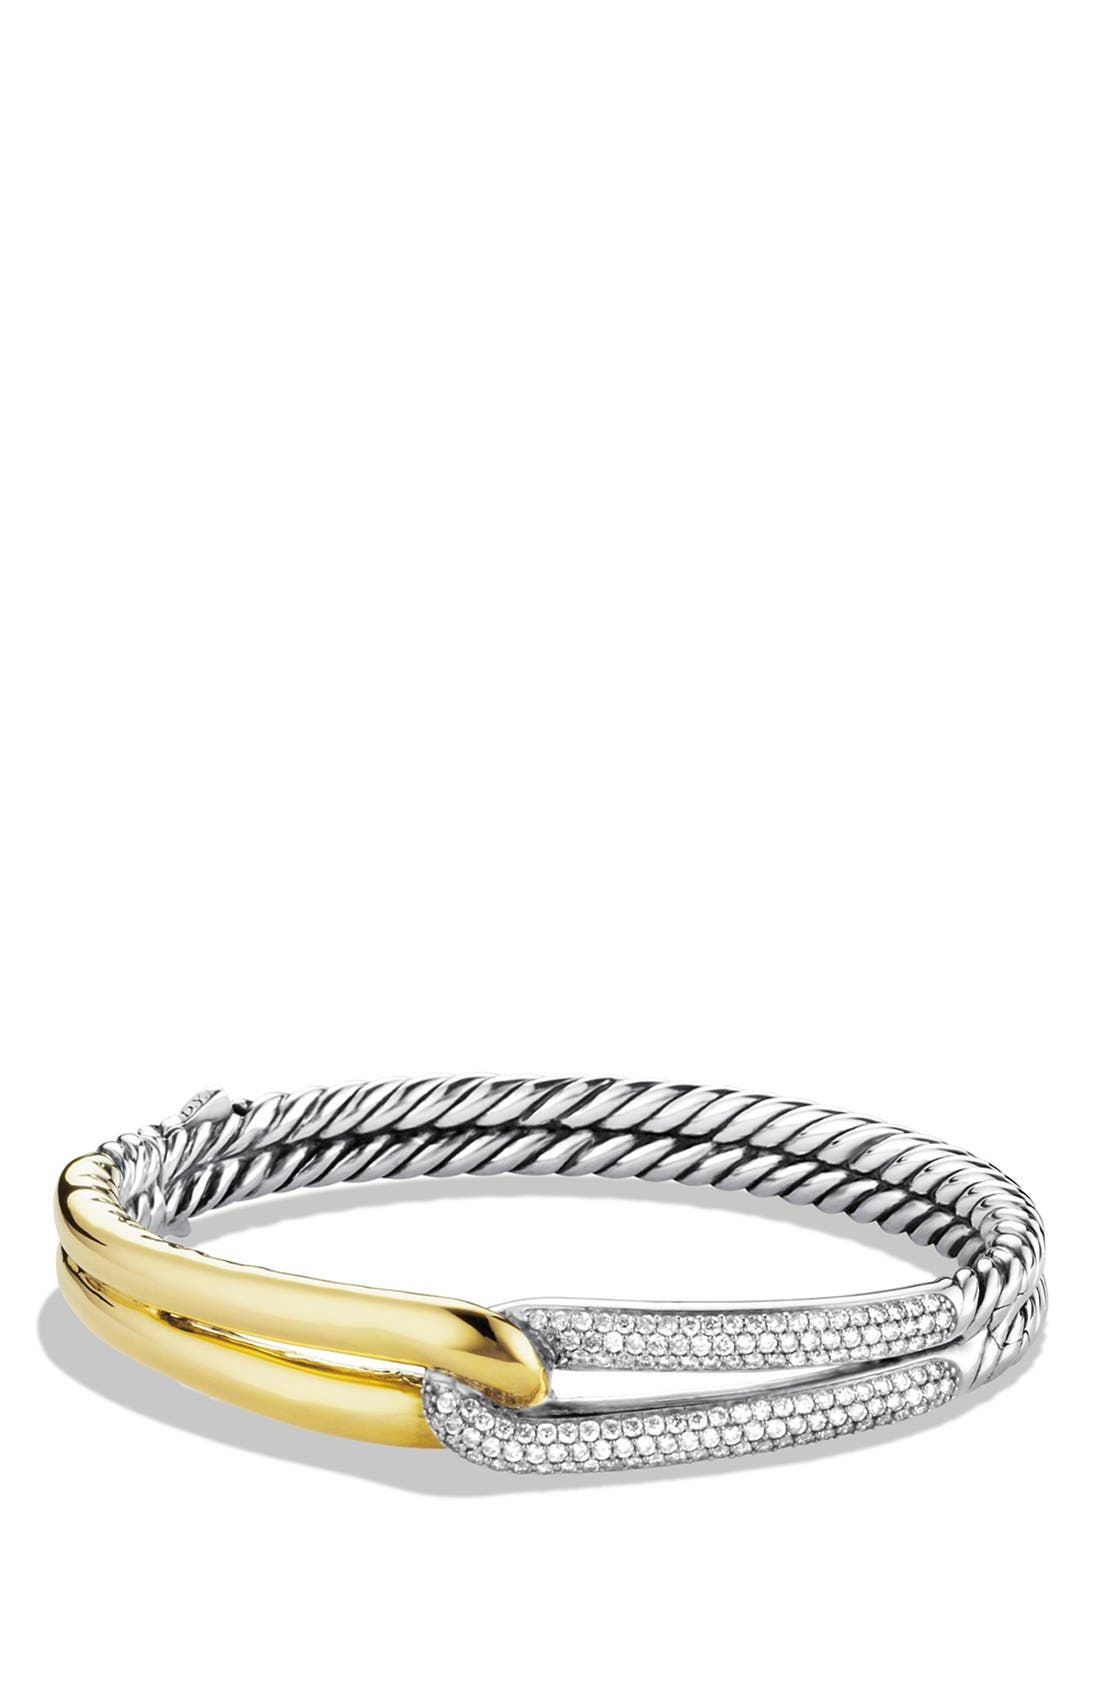 'Labyrinth' Single Loop Bracelet with Diamonds,                         Main,                         color, 040